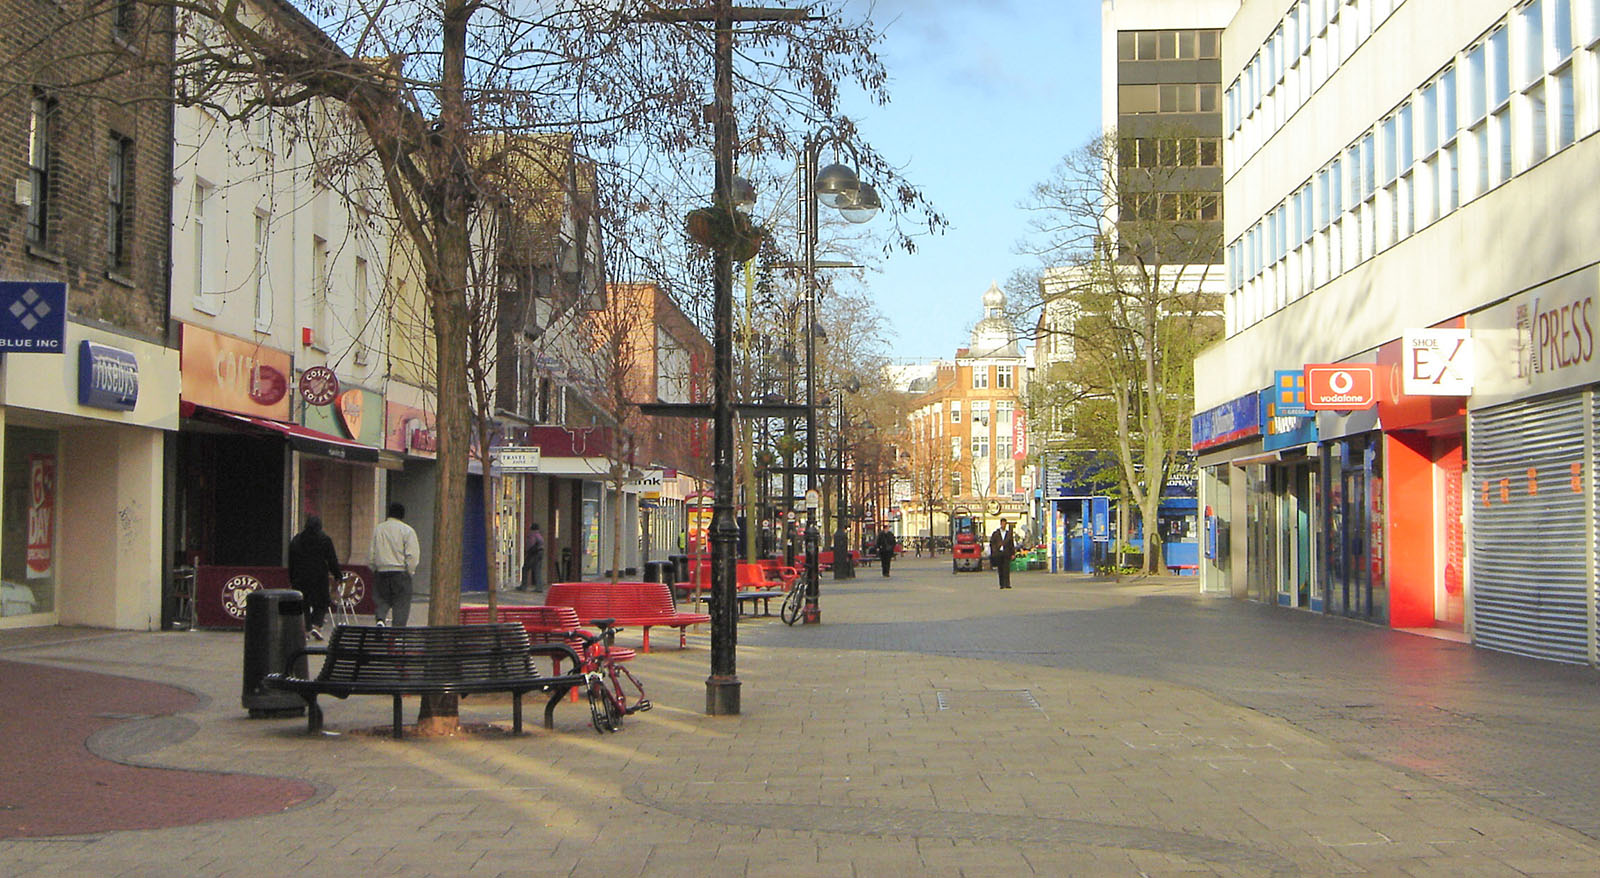 View of Hounslow High Street.